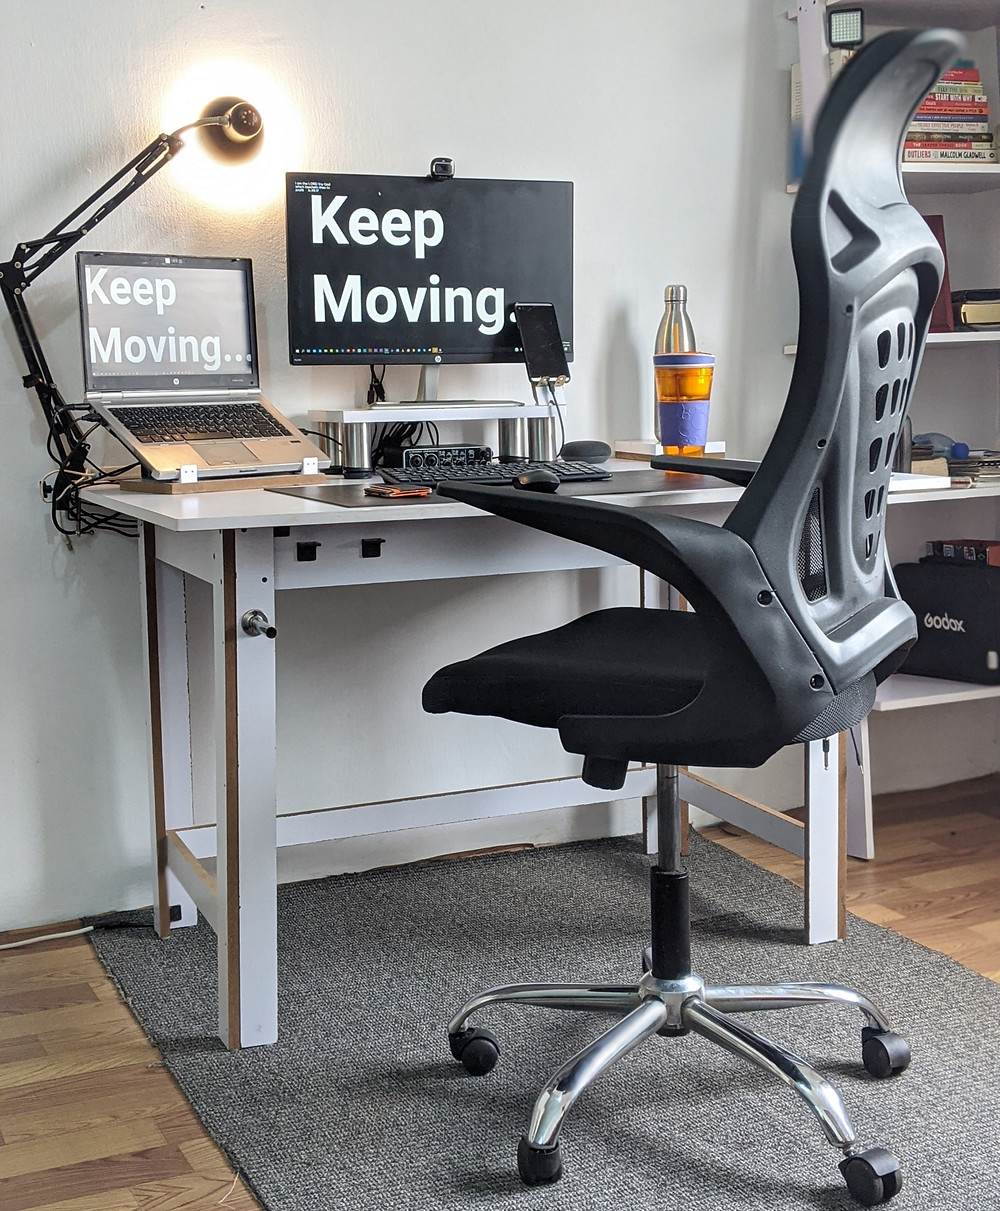 Creating a home office environment is vital for a work-from-home career-